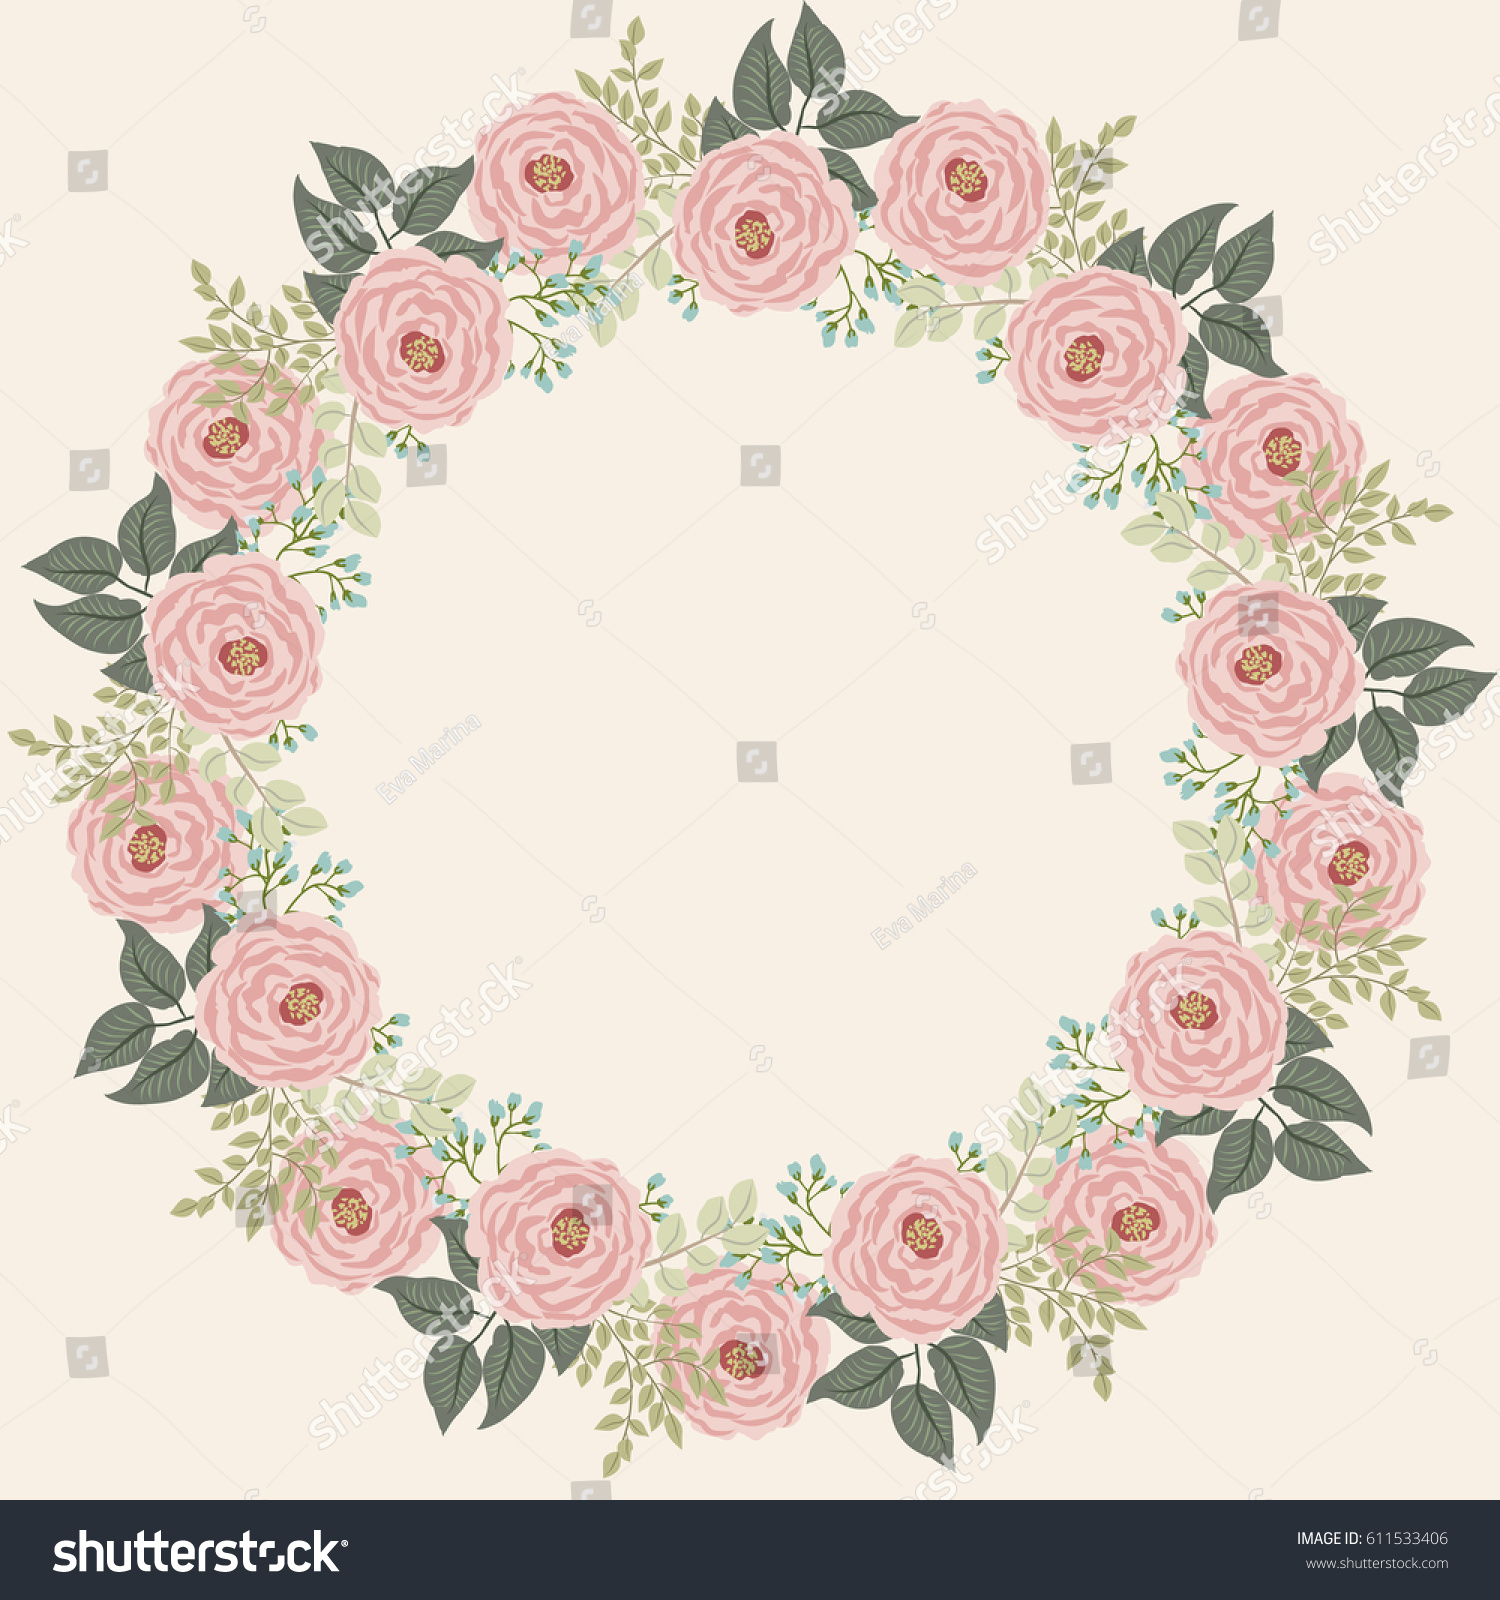 Floral Round Frames Cute Flowers Antique Stock Vector 611533406 ...